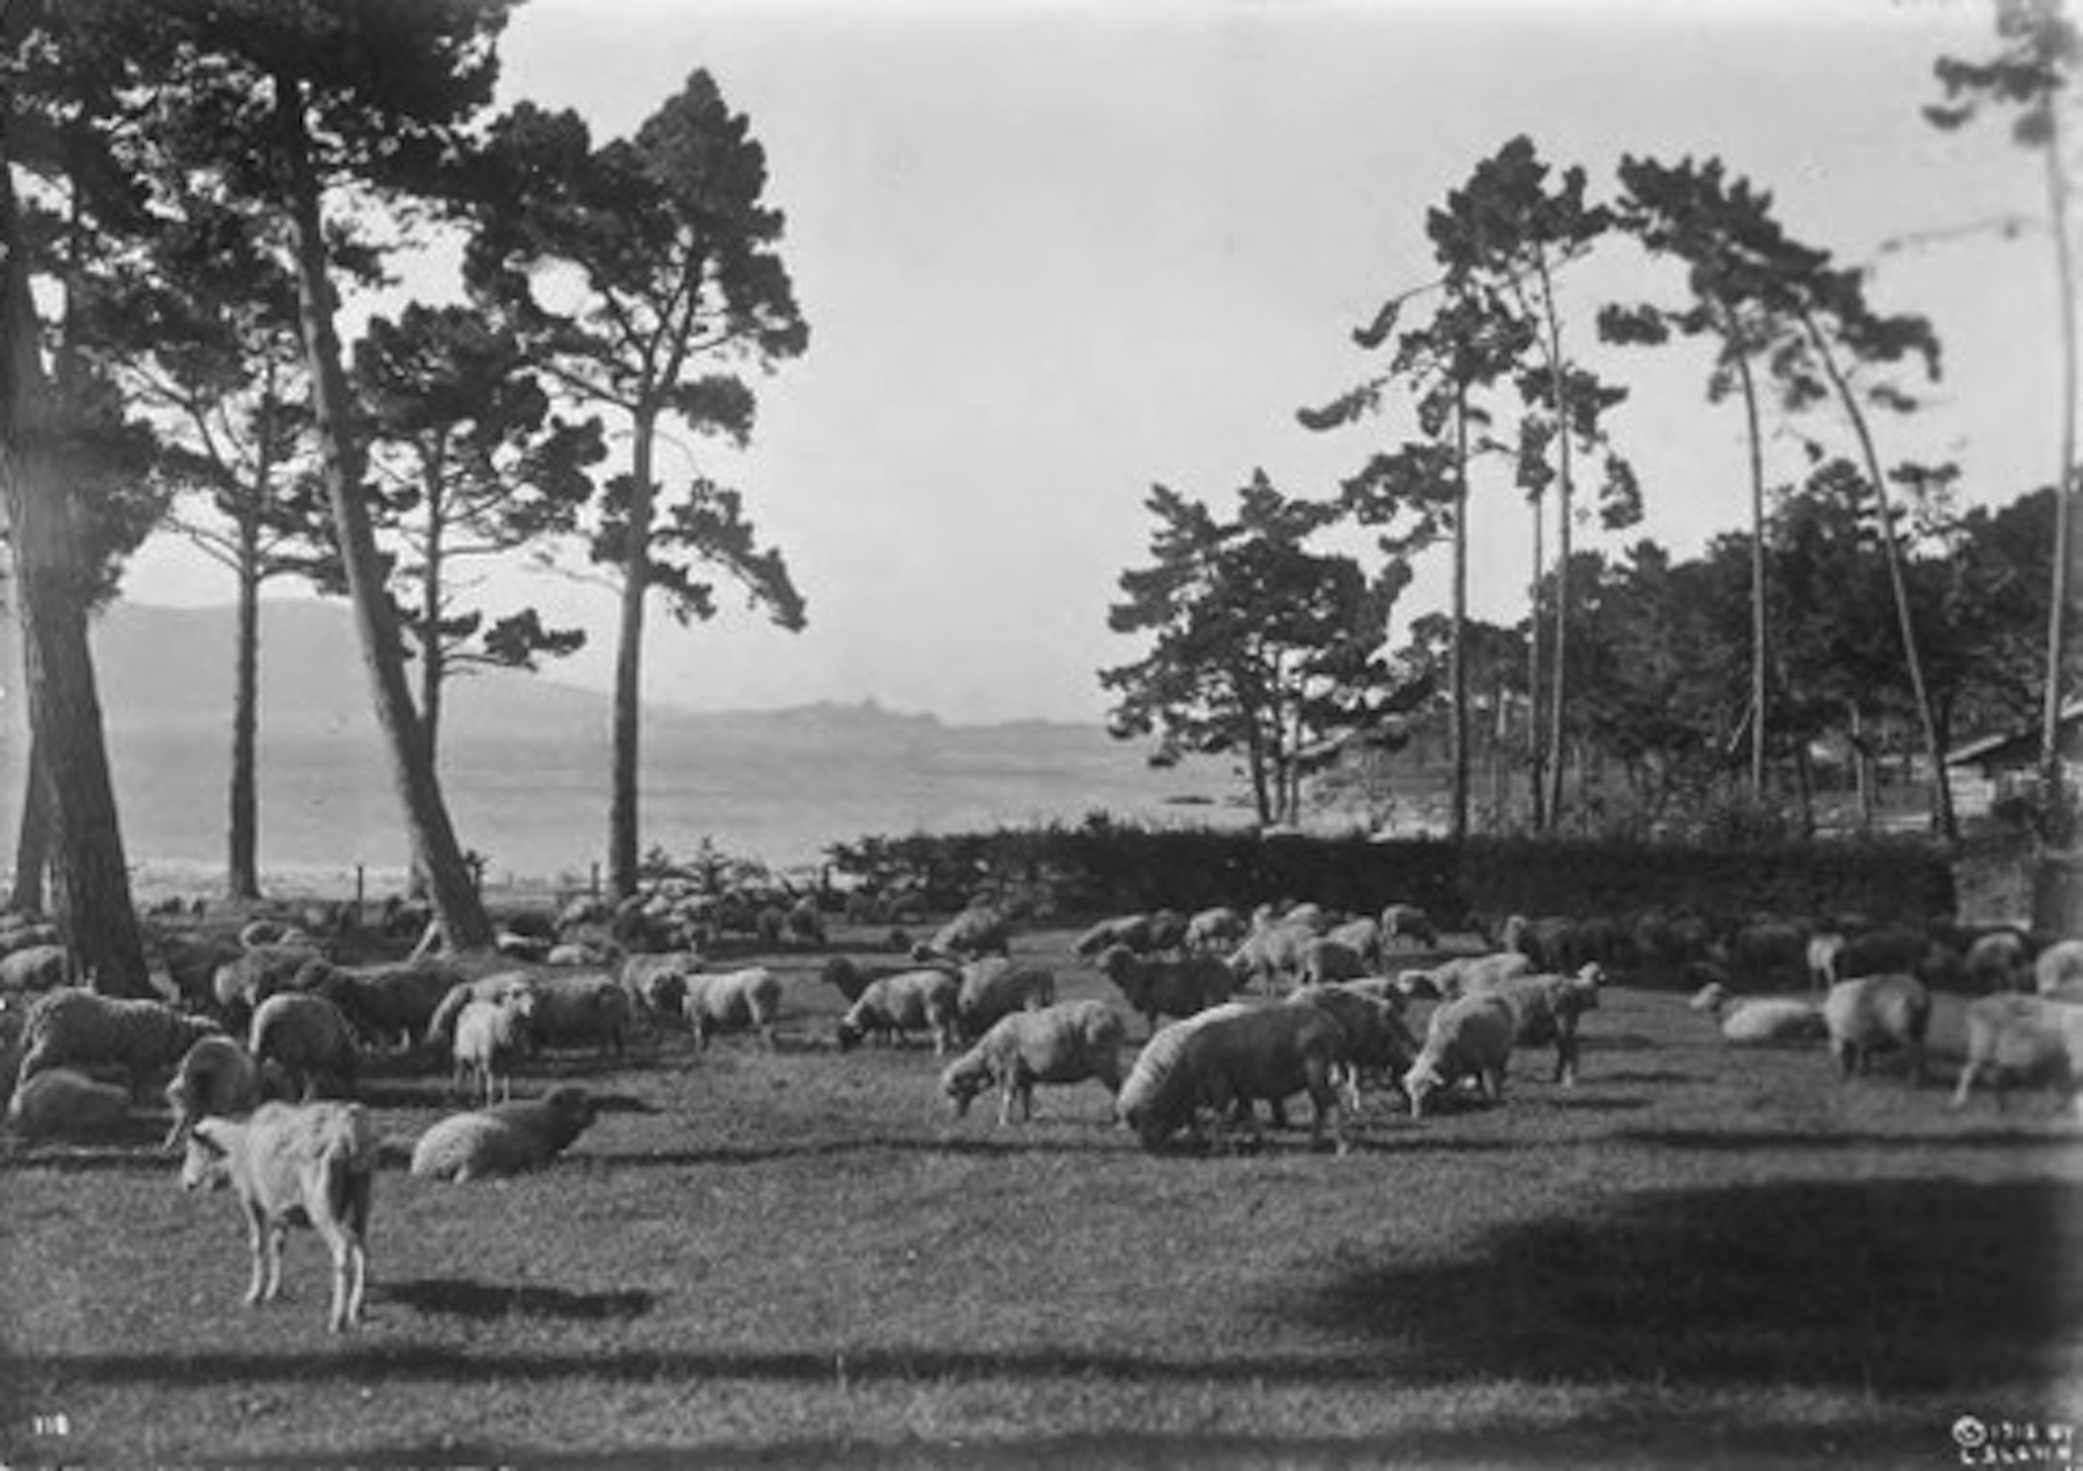 An ovine grounds crew at Pebble Beach